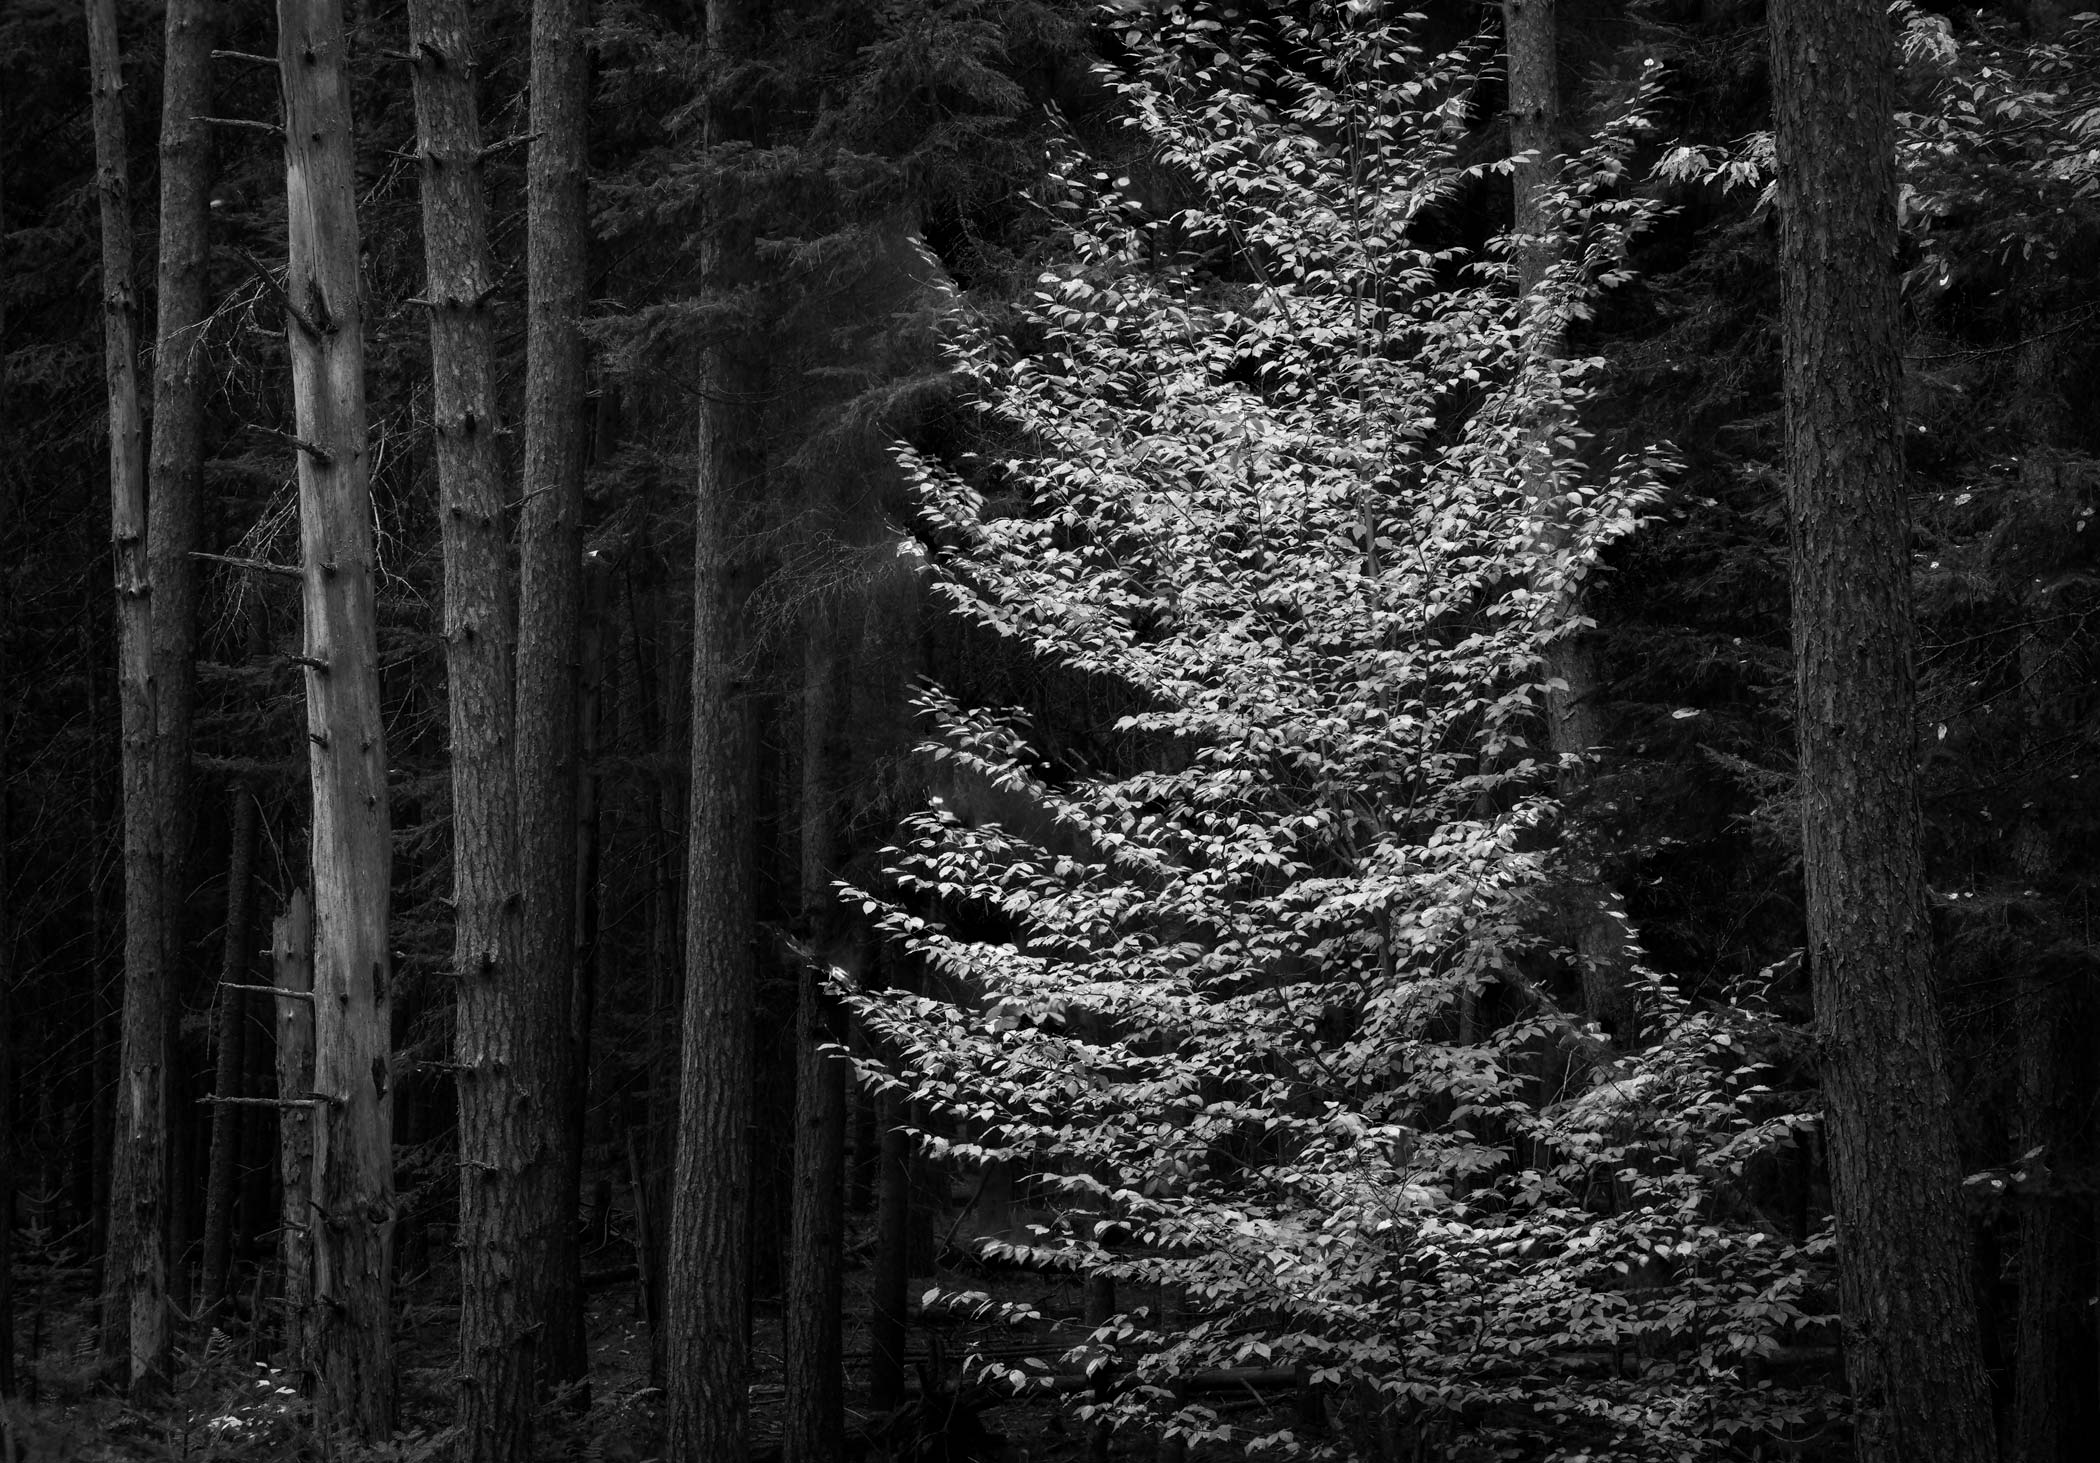 Beech Among the Pines